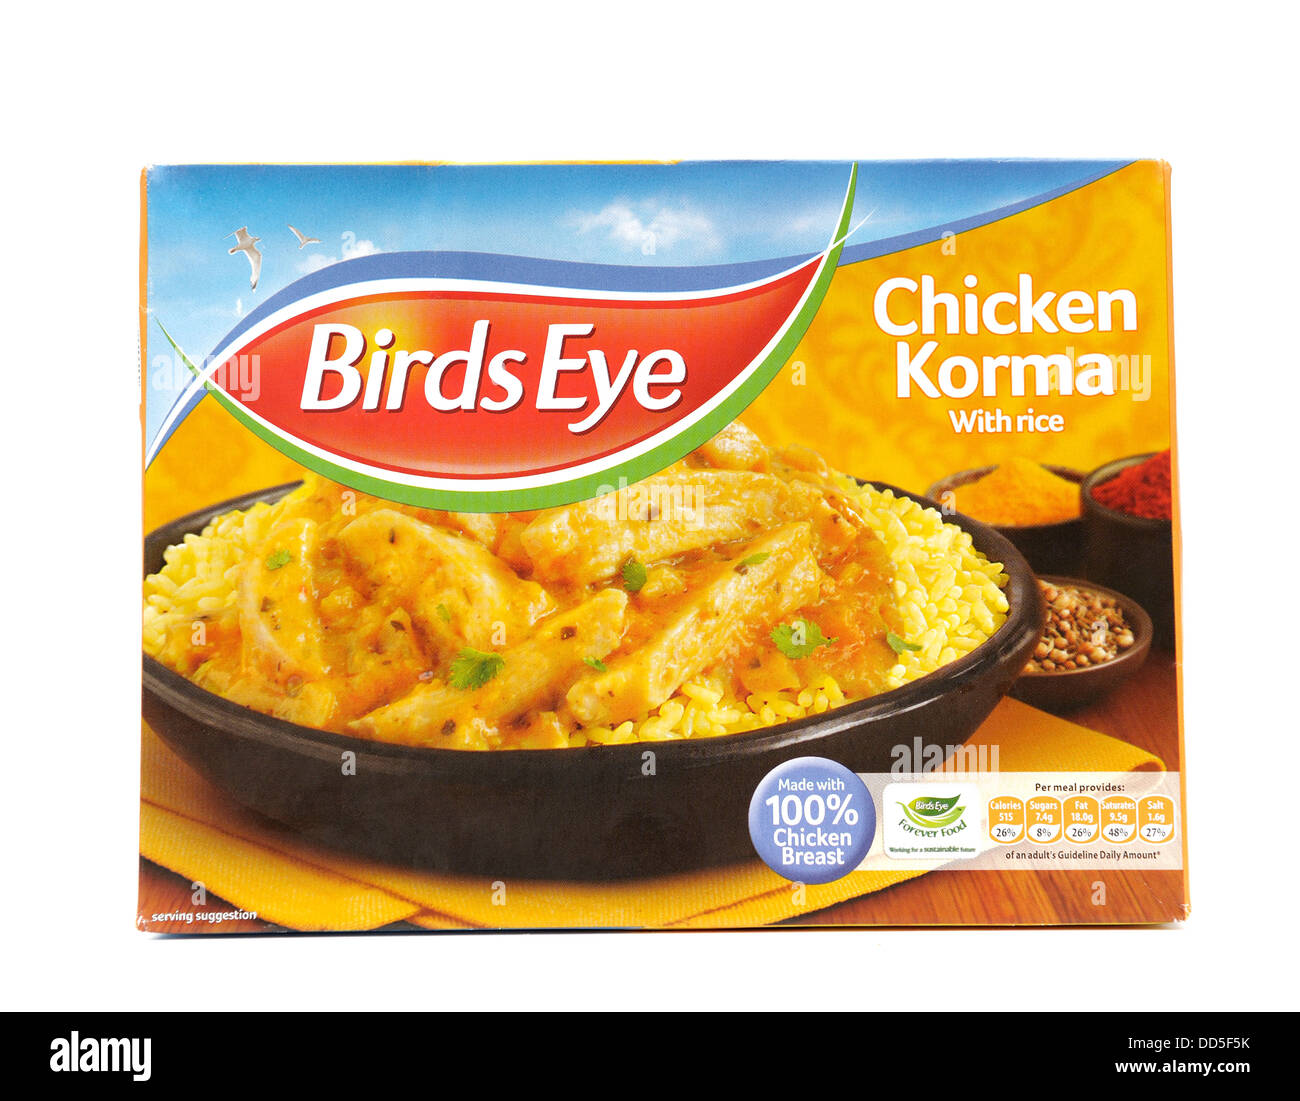 Birdseye chicken korma with rice ready meal - Stock Image